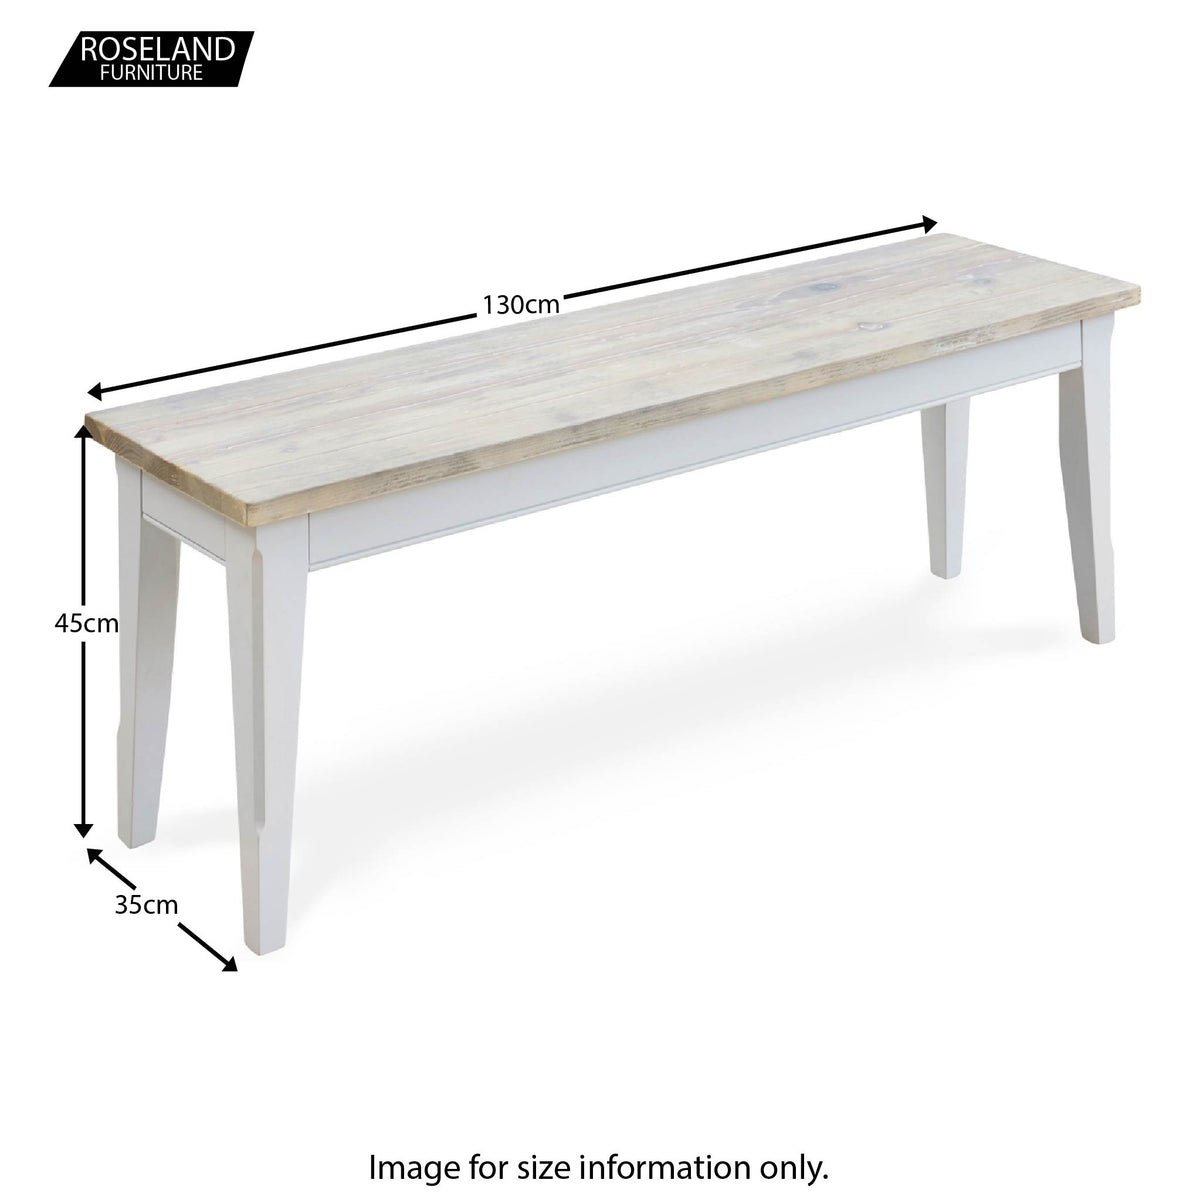 Signature 130cm Dining Bench - Size Guide